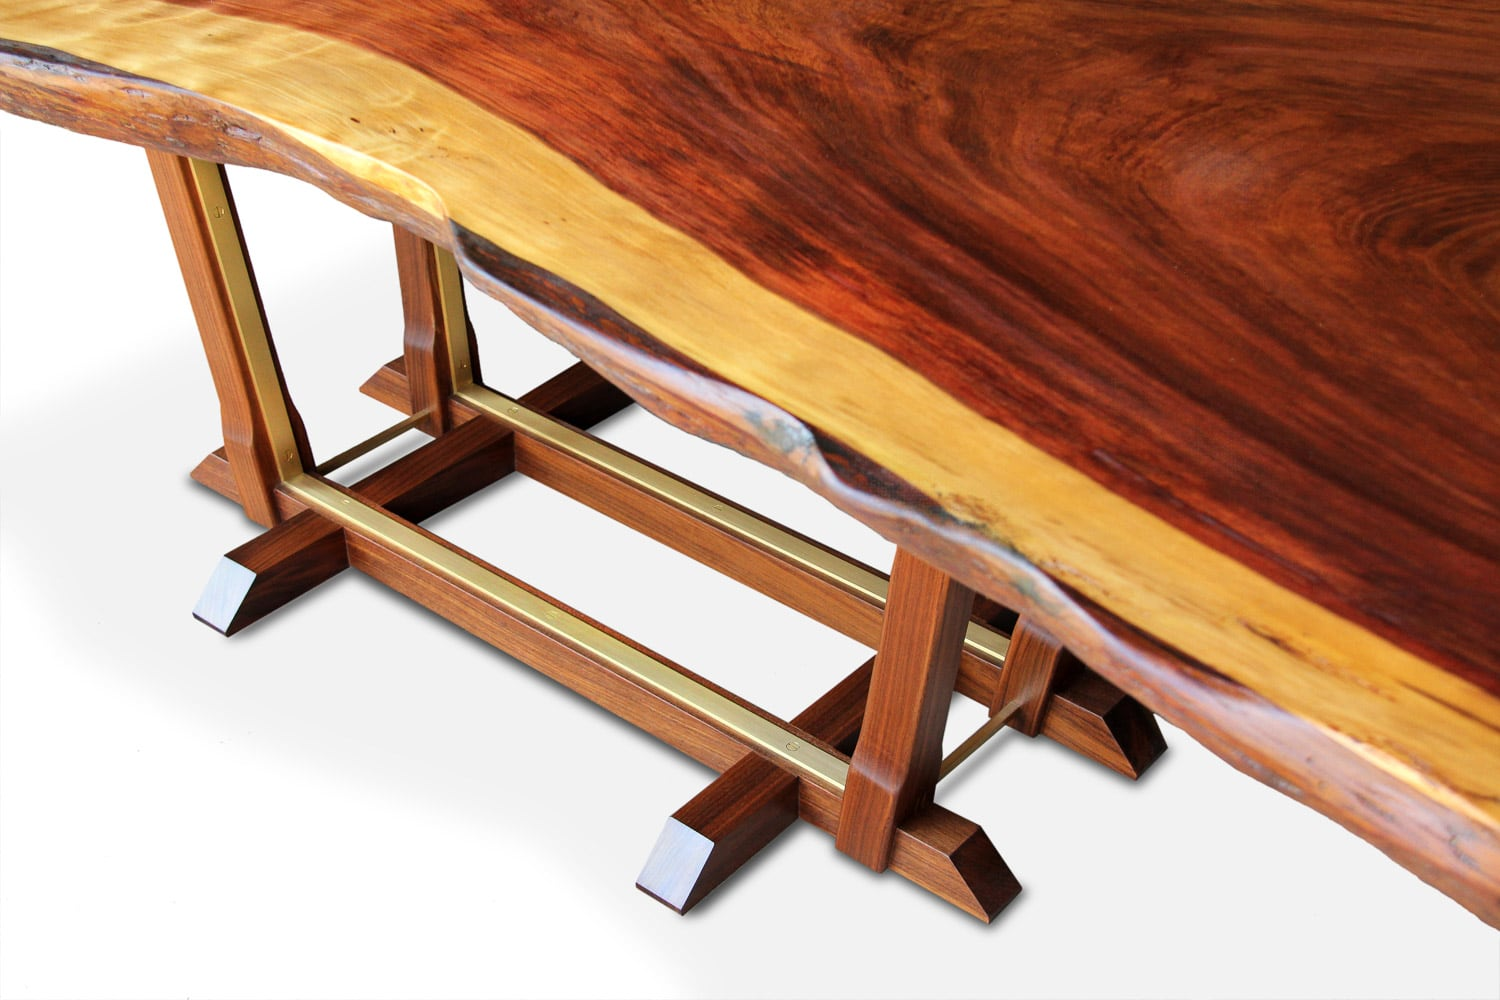 Redwood-table-3.jpg